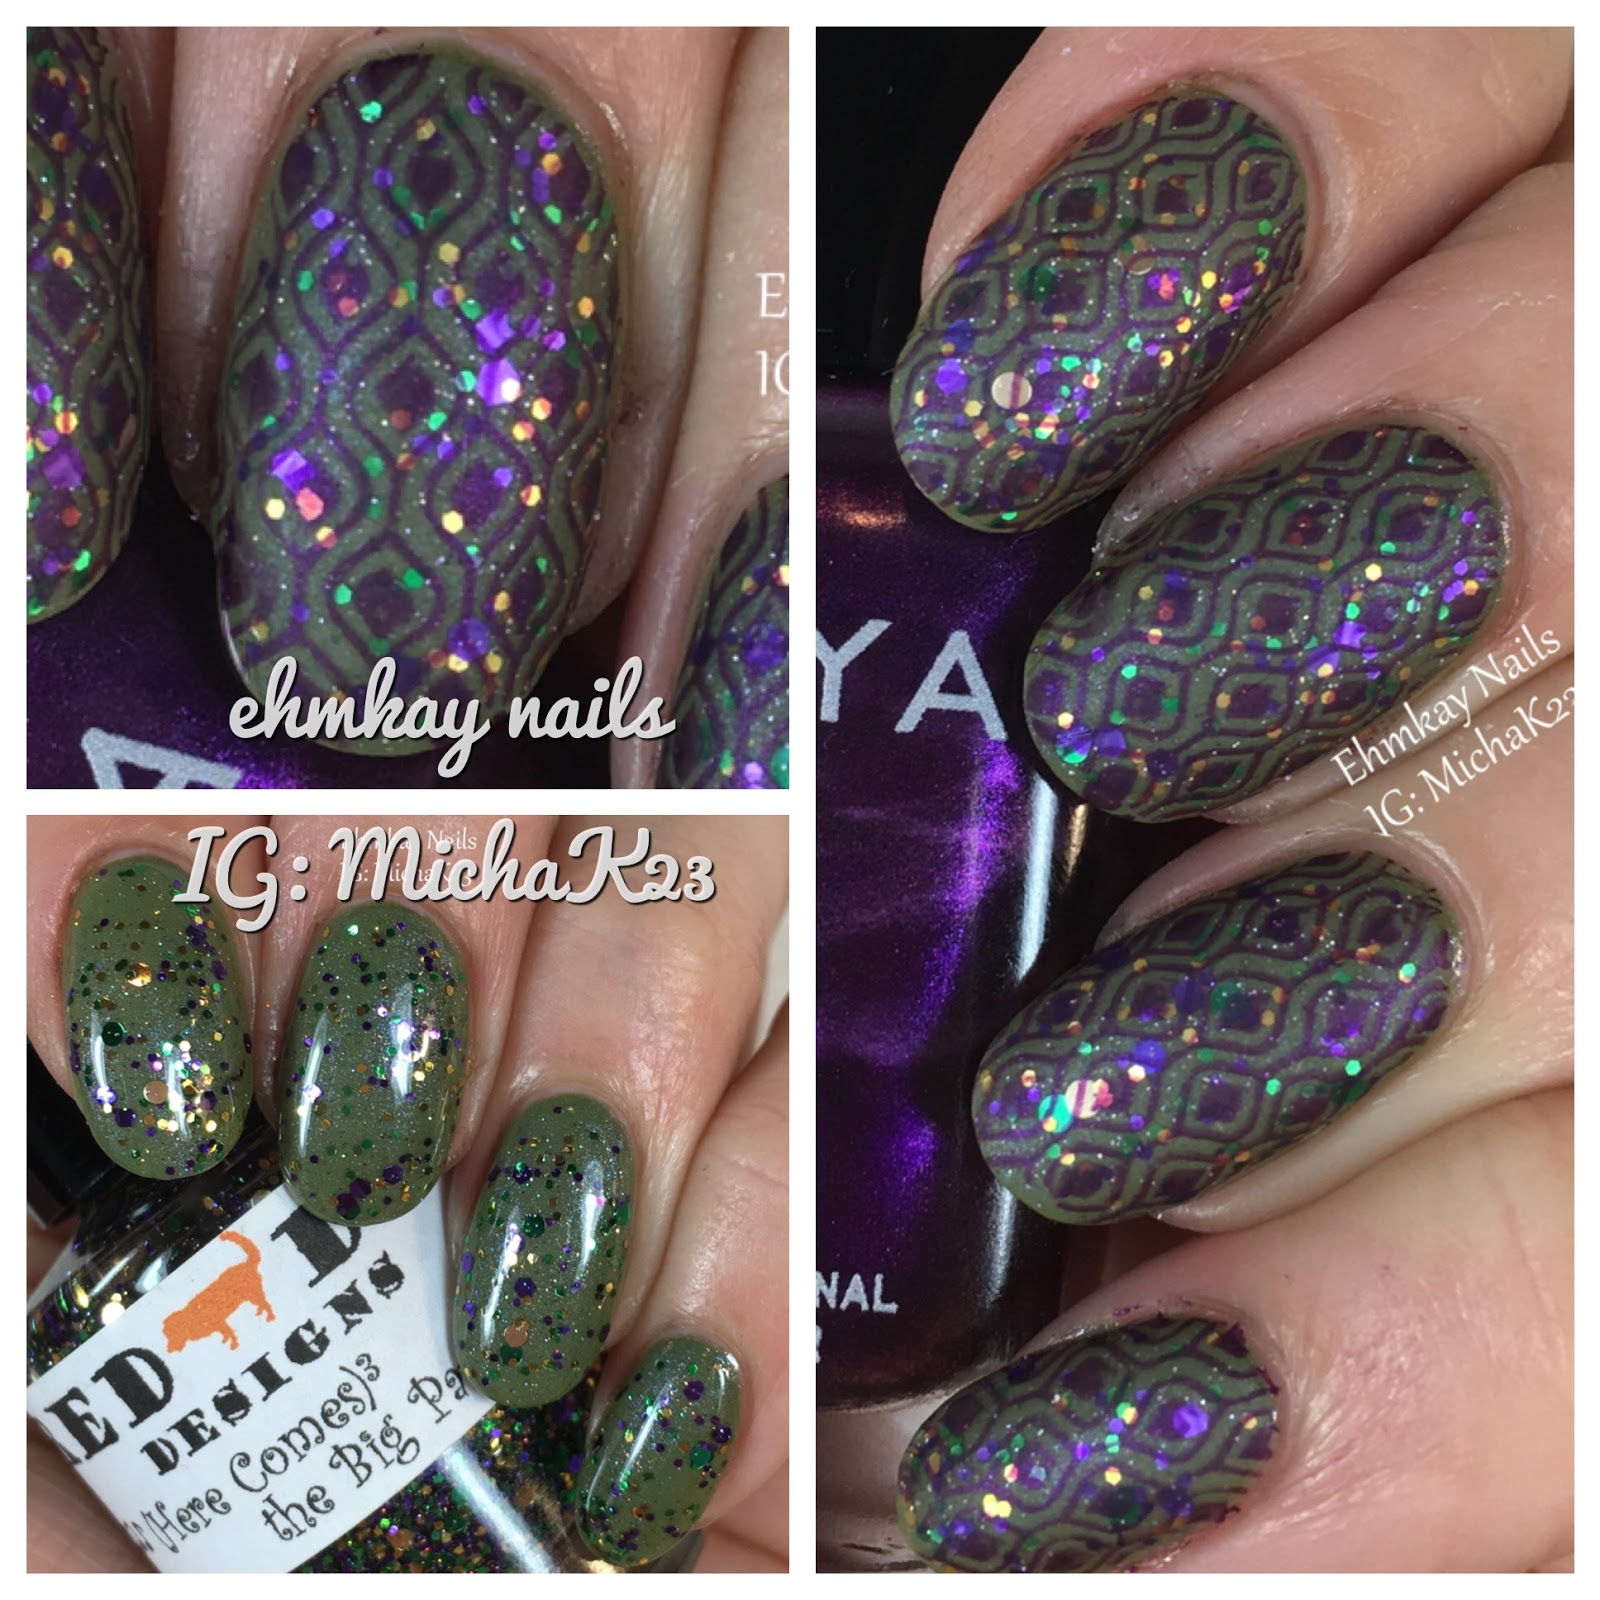 Ehmkay Nails: Mardi Gras Nail Art: Festive Layered Stamping